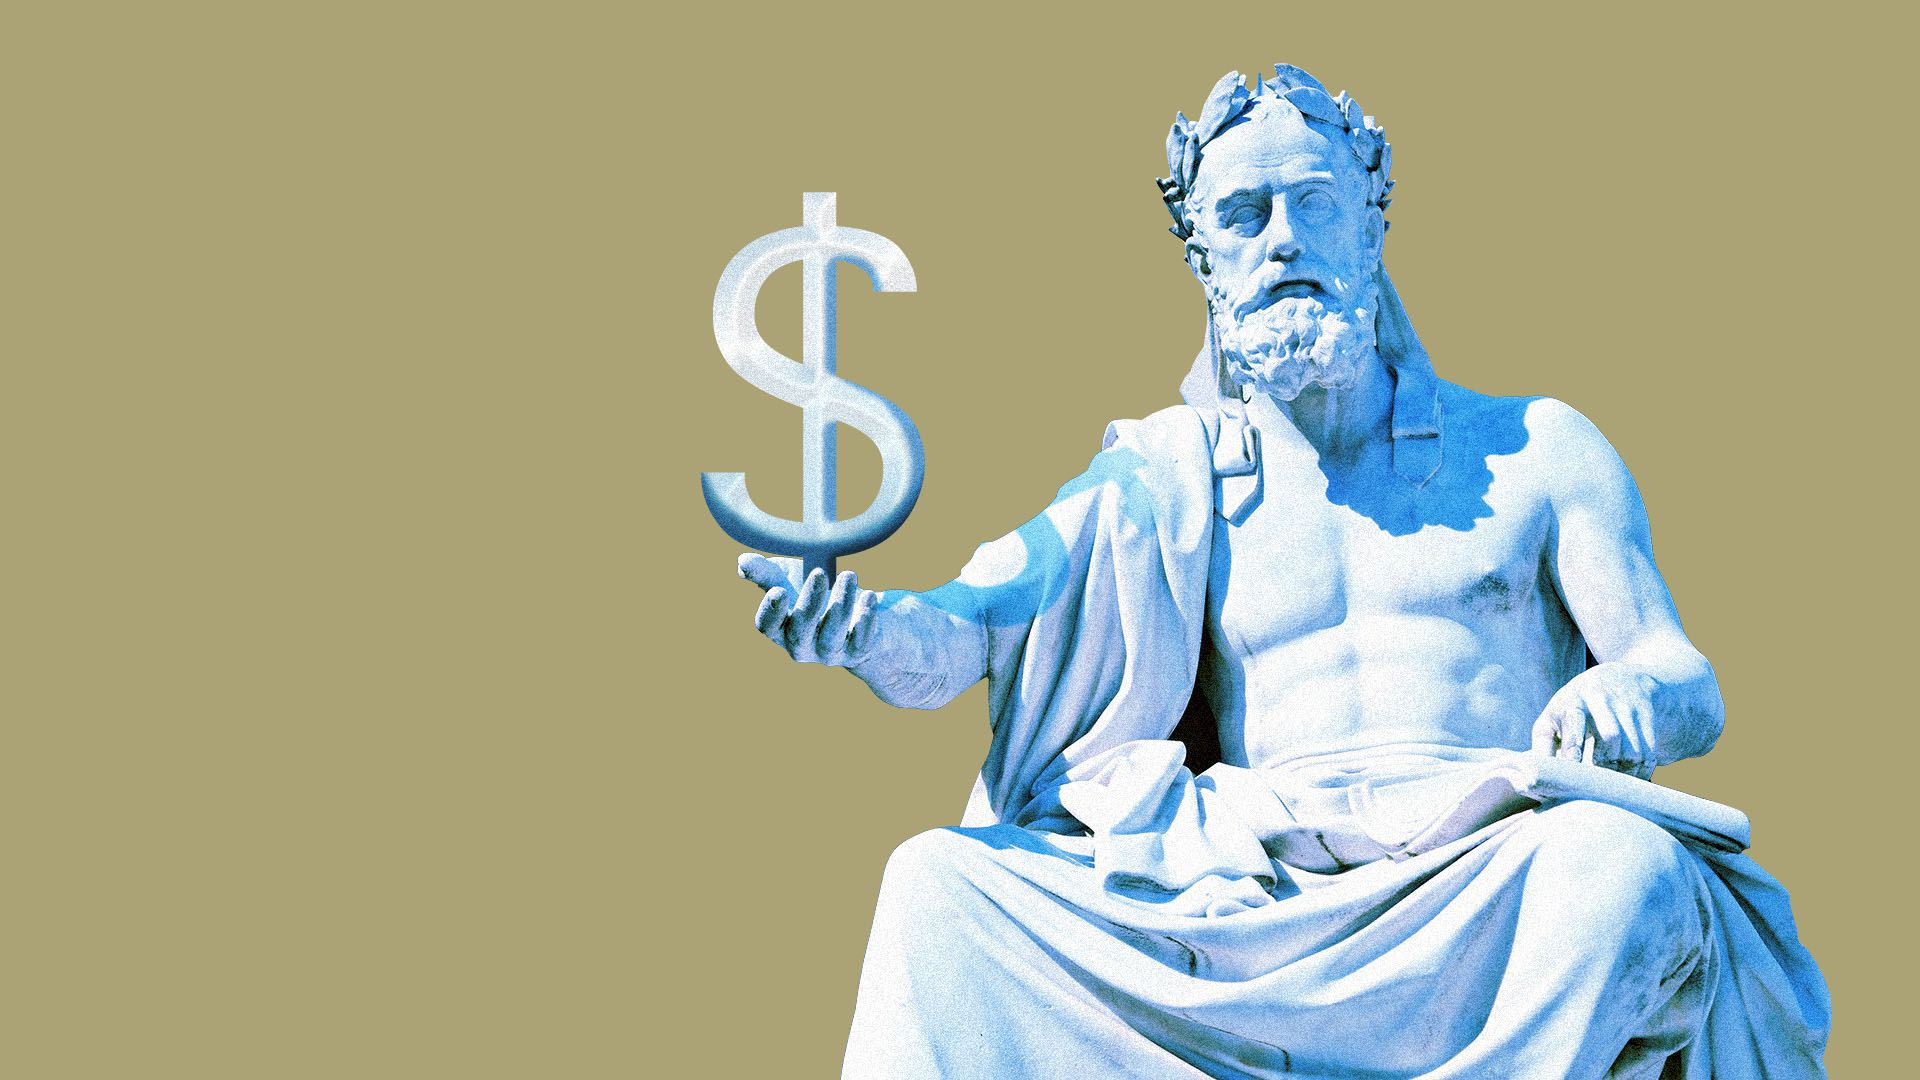 Illustration of the statue of the Greek historian and philosopher Xenophon holding a dollar sign.